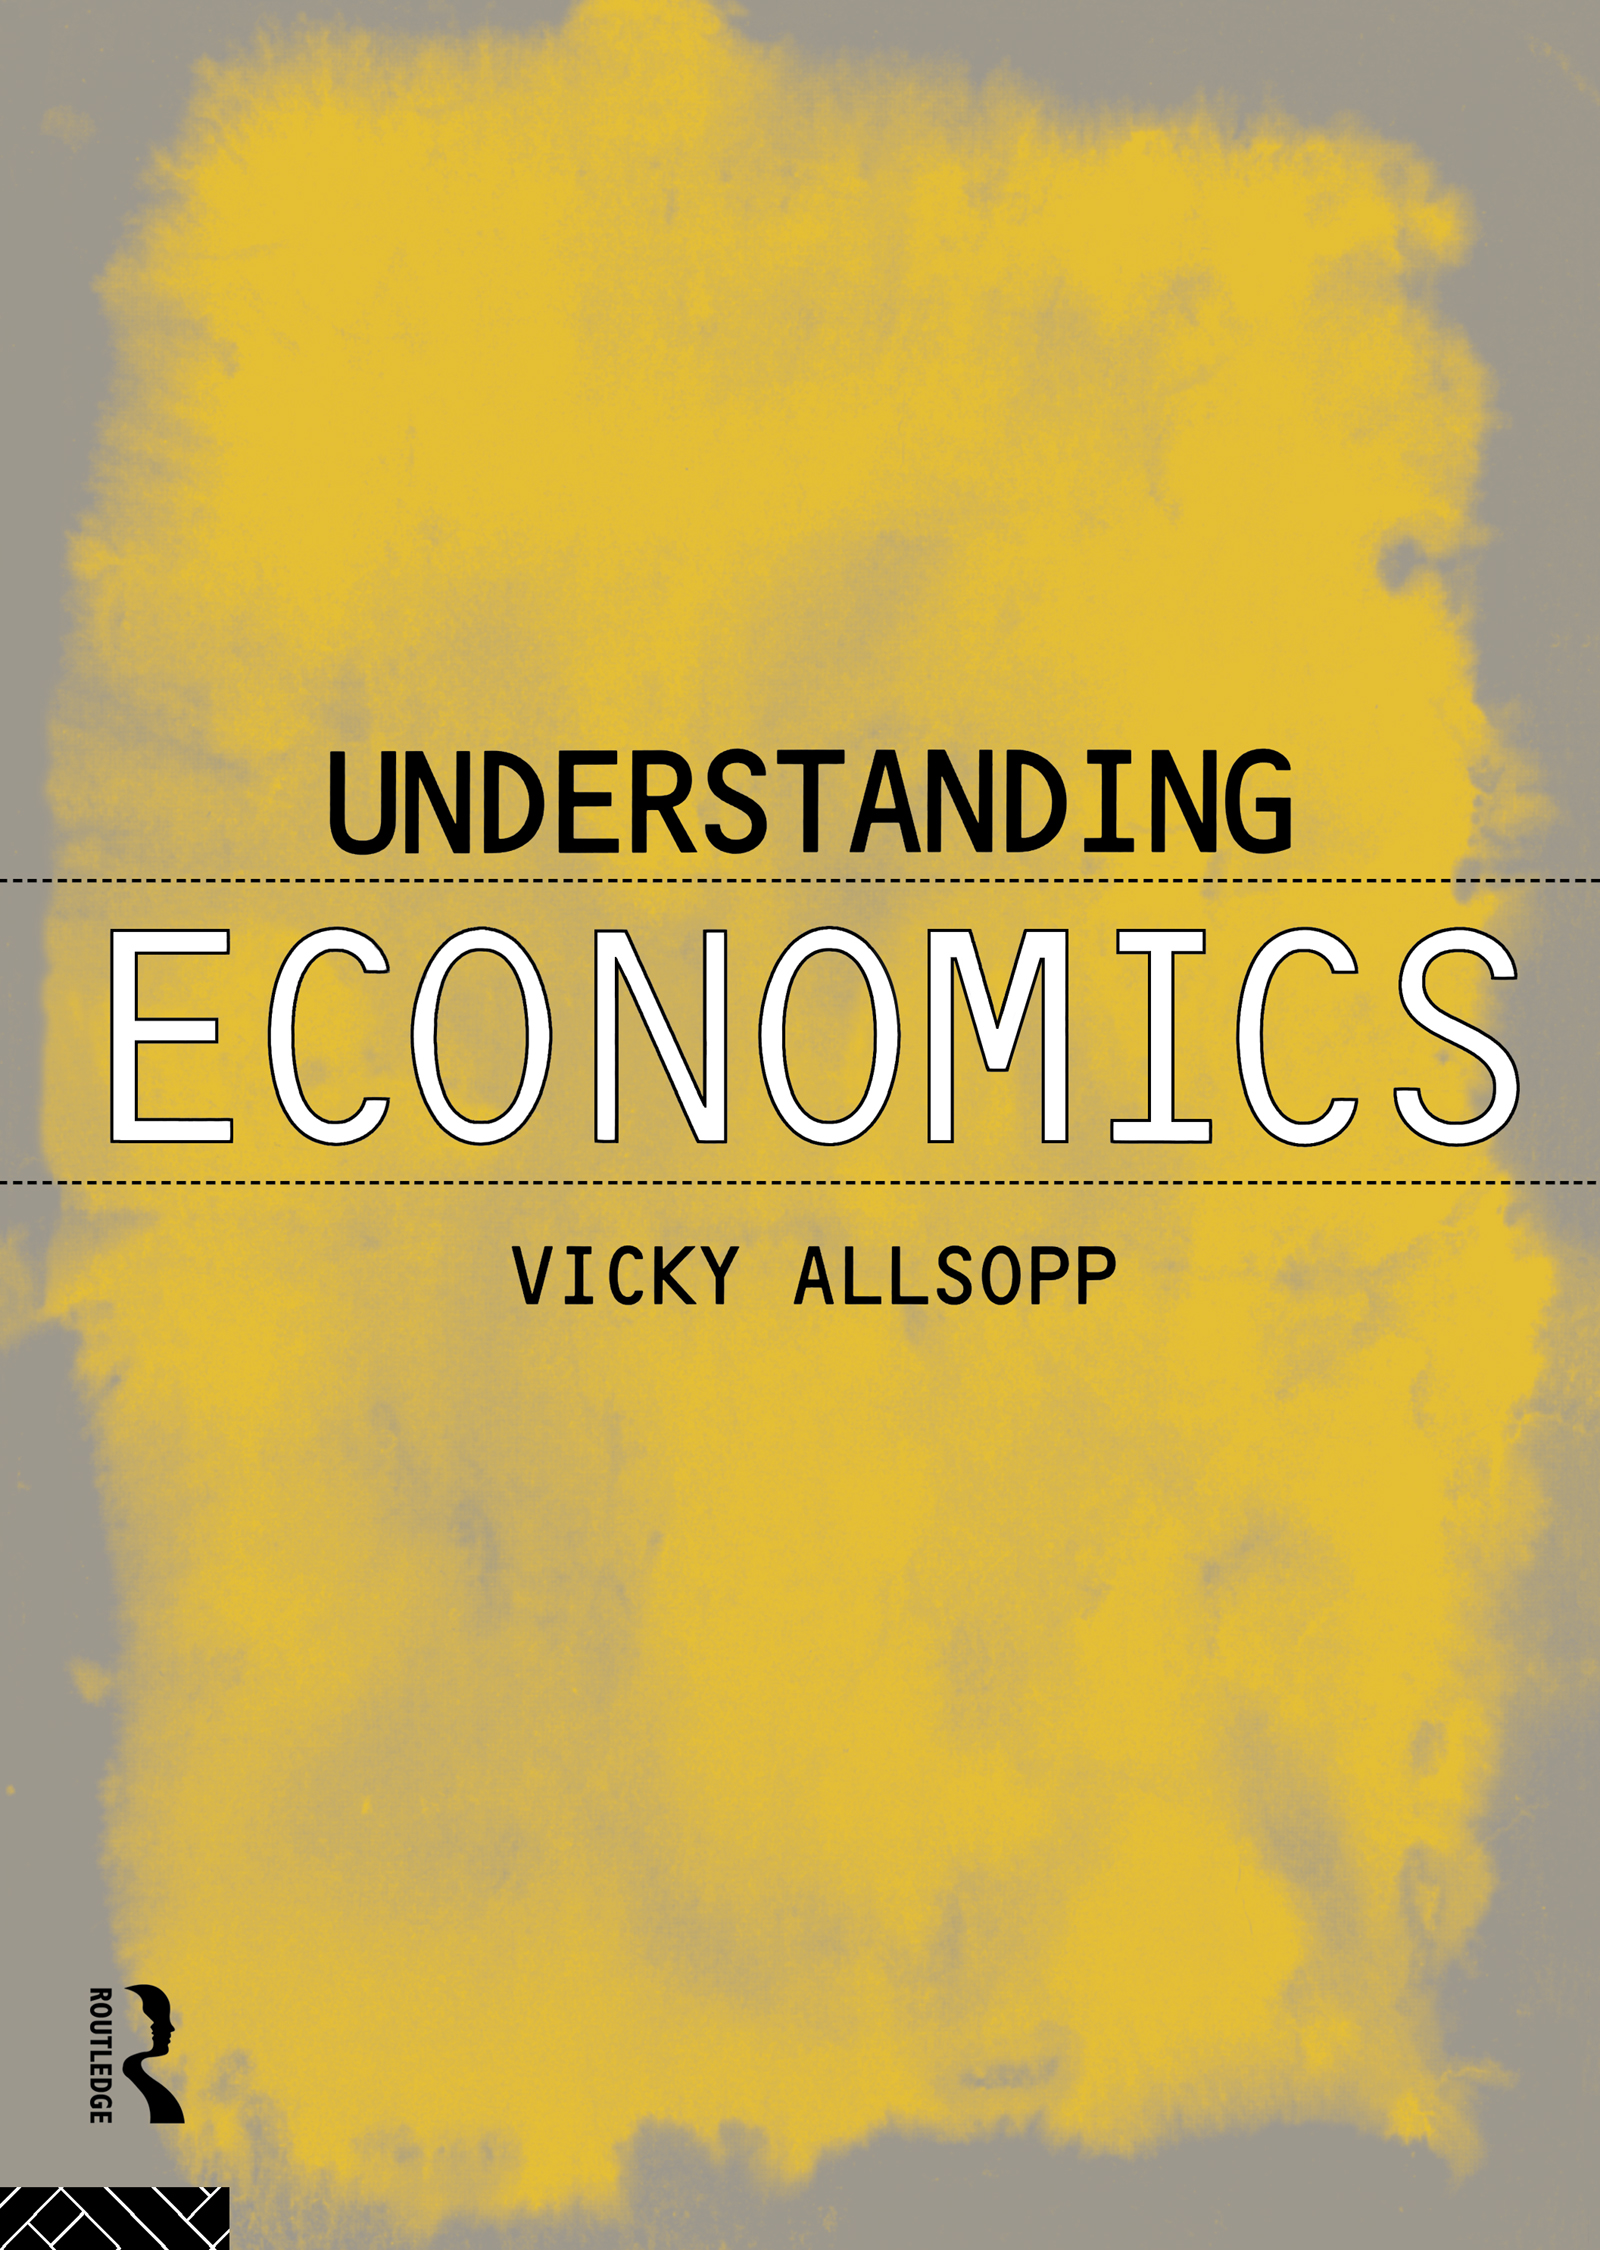 Download Ebook Understanding Economics by Vicky Allsopp Pdf